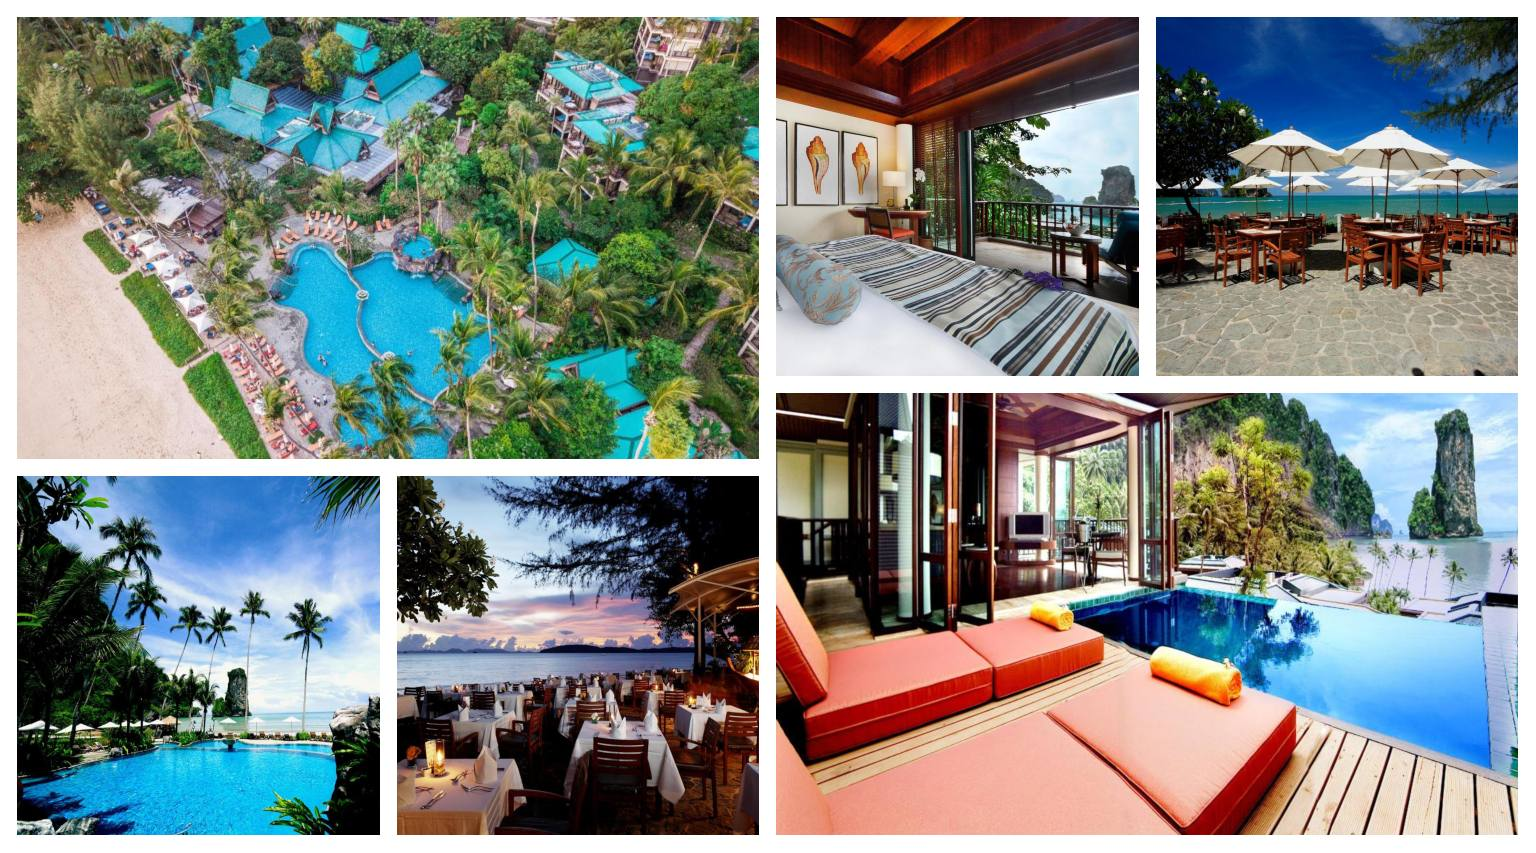 Collage Centara Grand Beach Resort & Villas in Ao Nang, Thailand